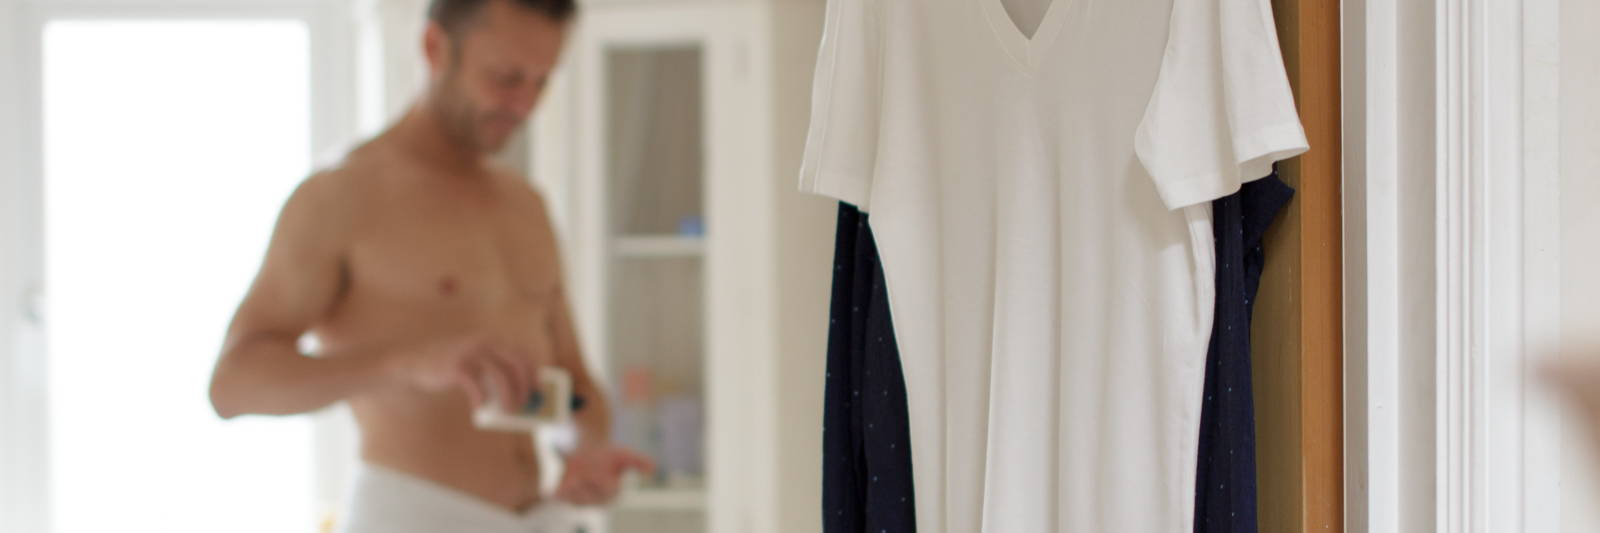 A picture of a white undershirt handing on a bathroom door with man in the background applying aftershave